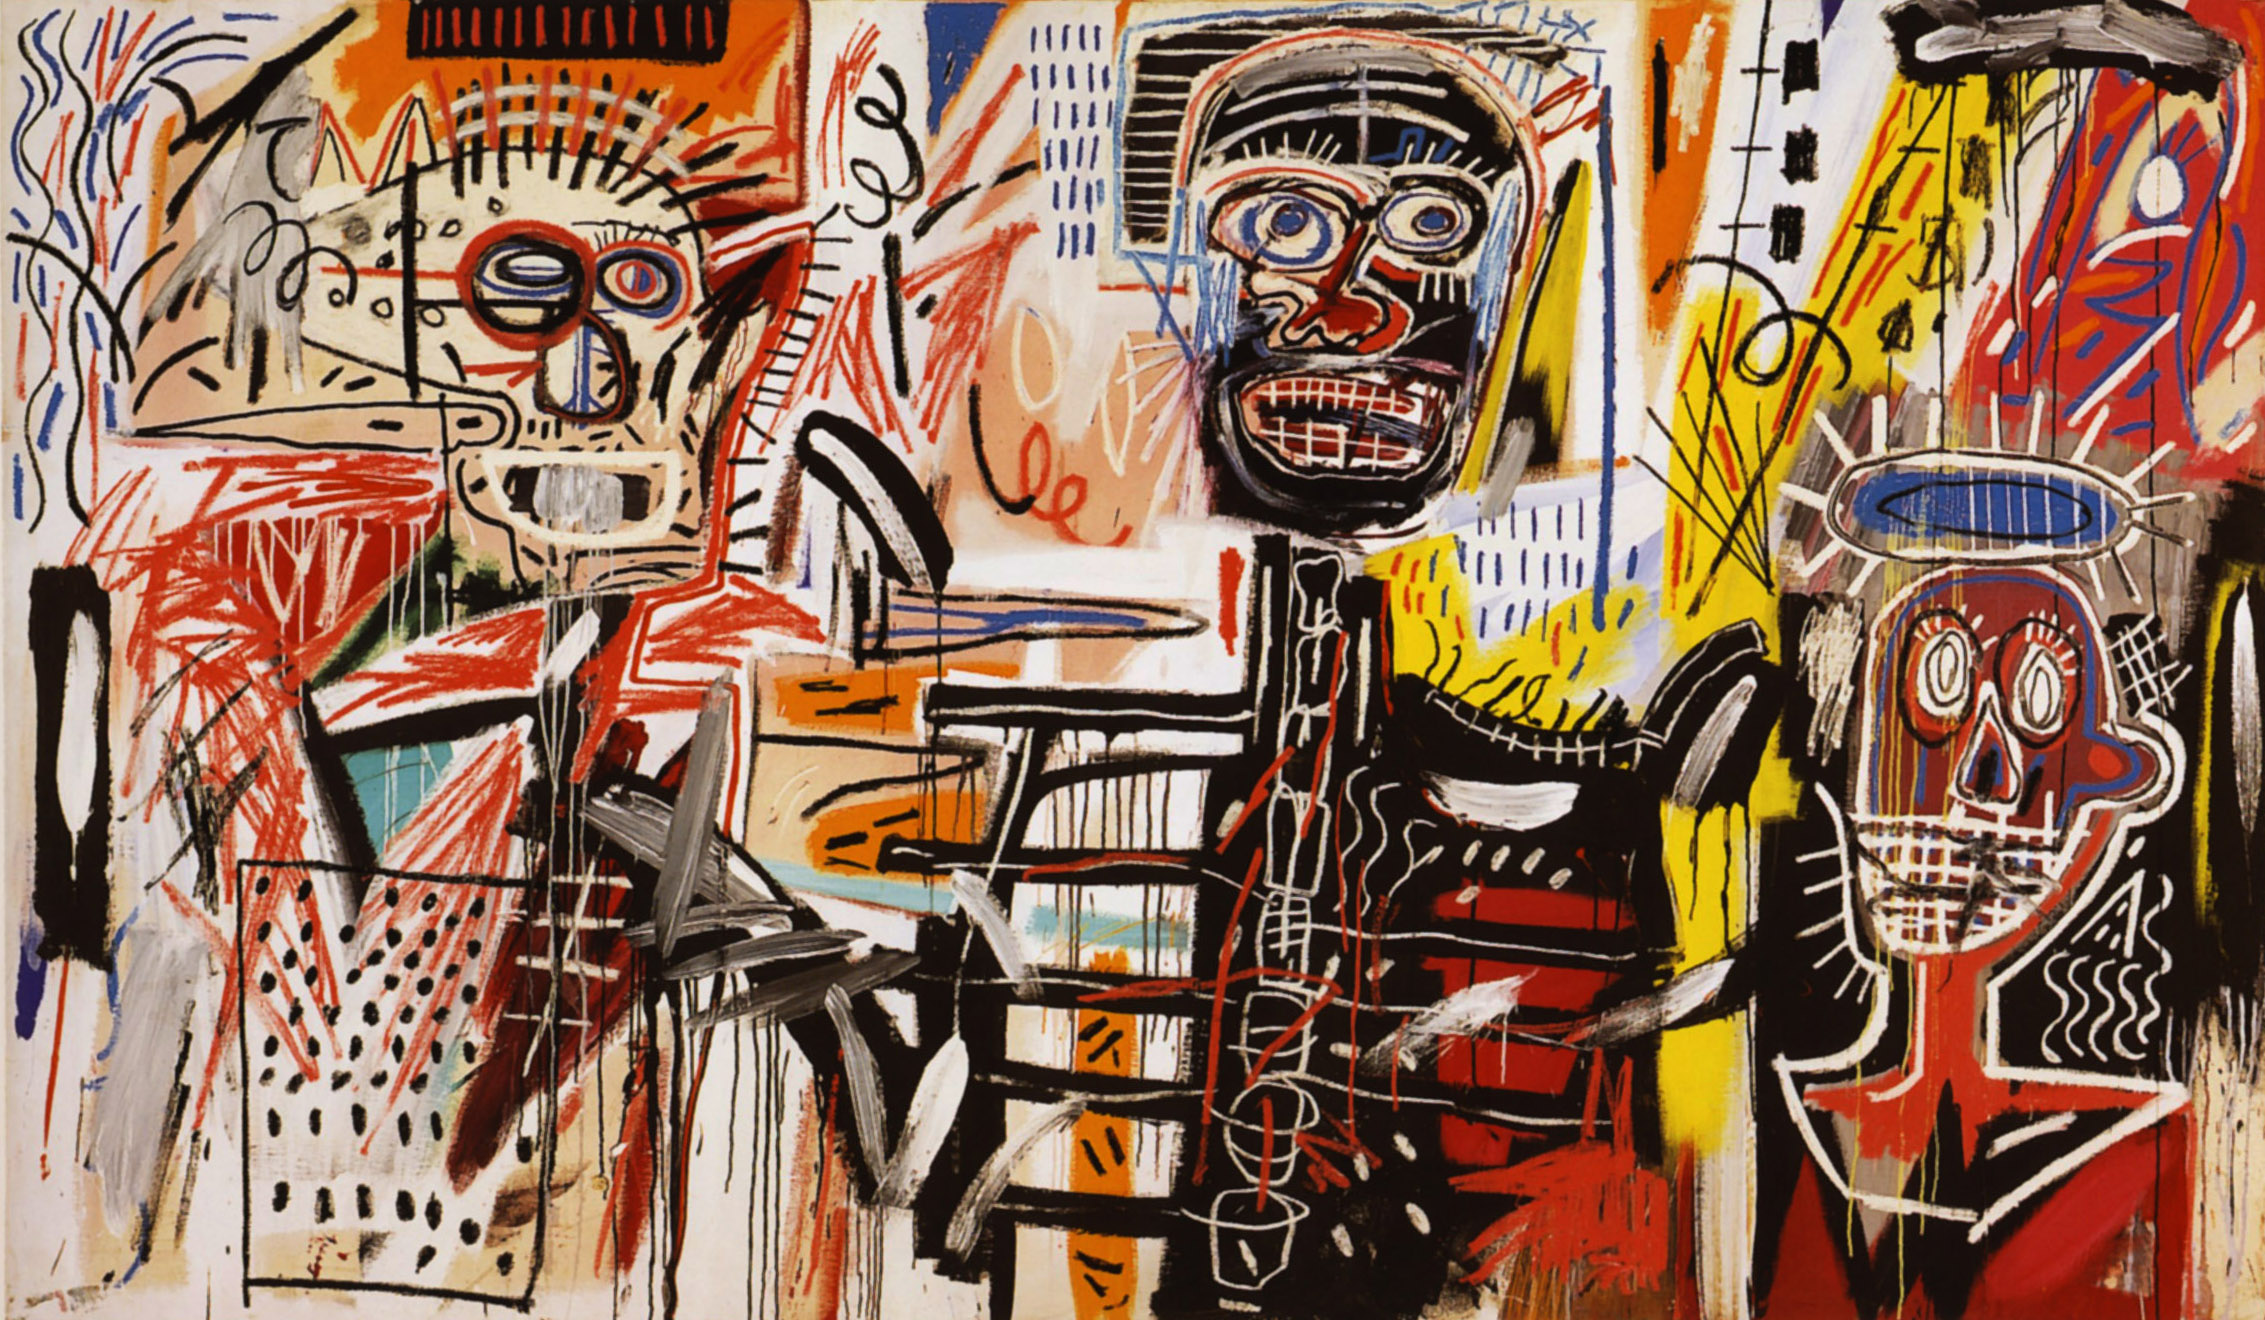 short biography jean michel basquiat Who was jean-michel basquiat this biography sheds light on the life, work and legacy of this groundbreaking and provocative artist from new york.